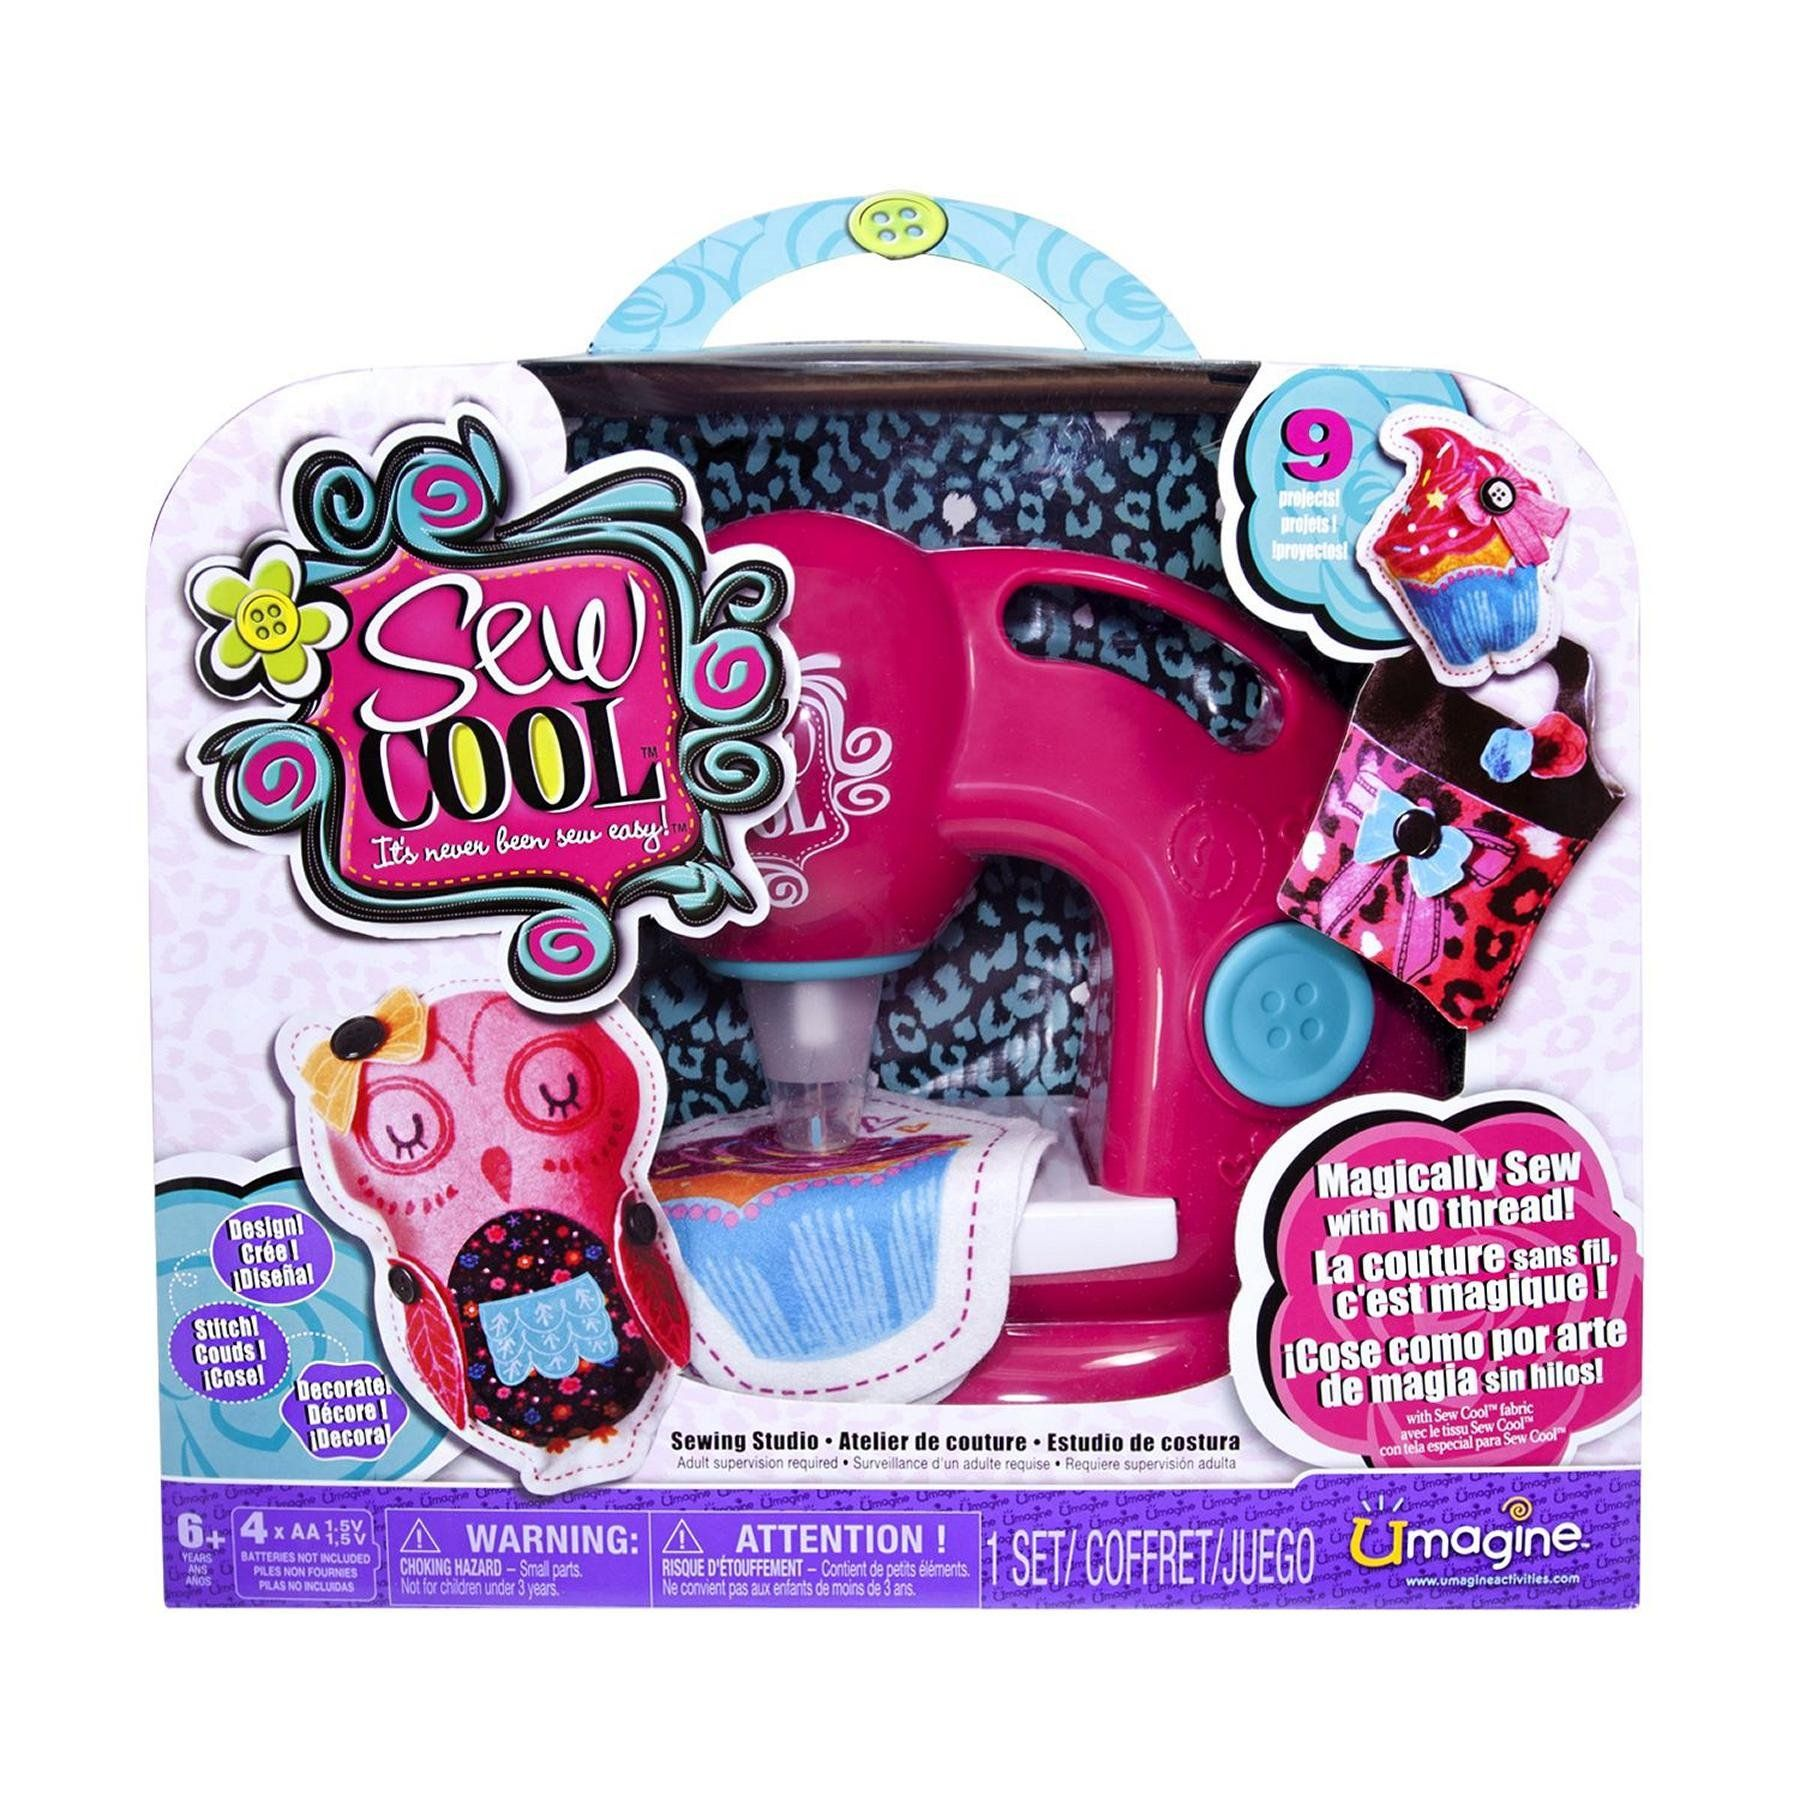 25 Spectacular Gift Ideas For 8 Year Old Girls That Will